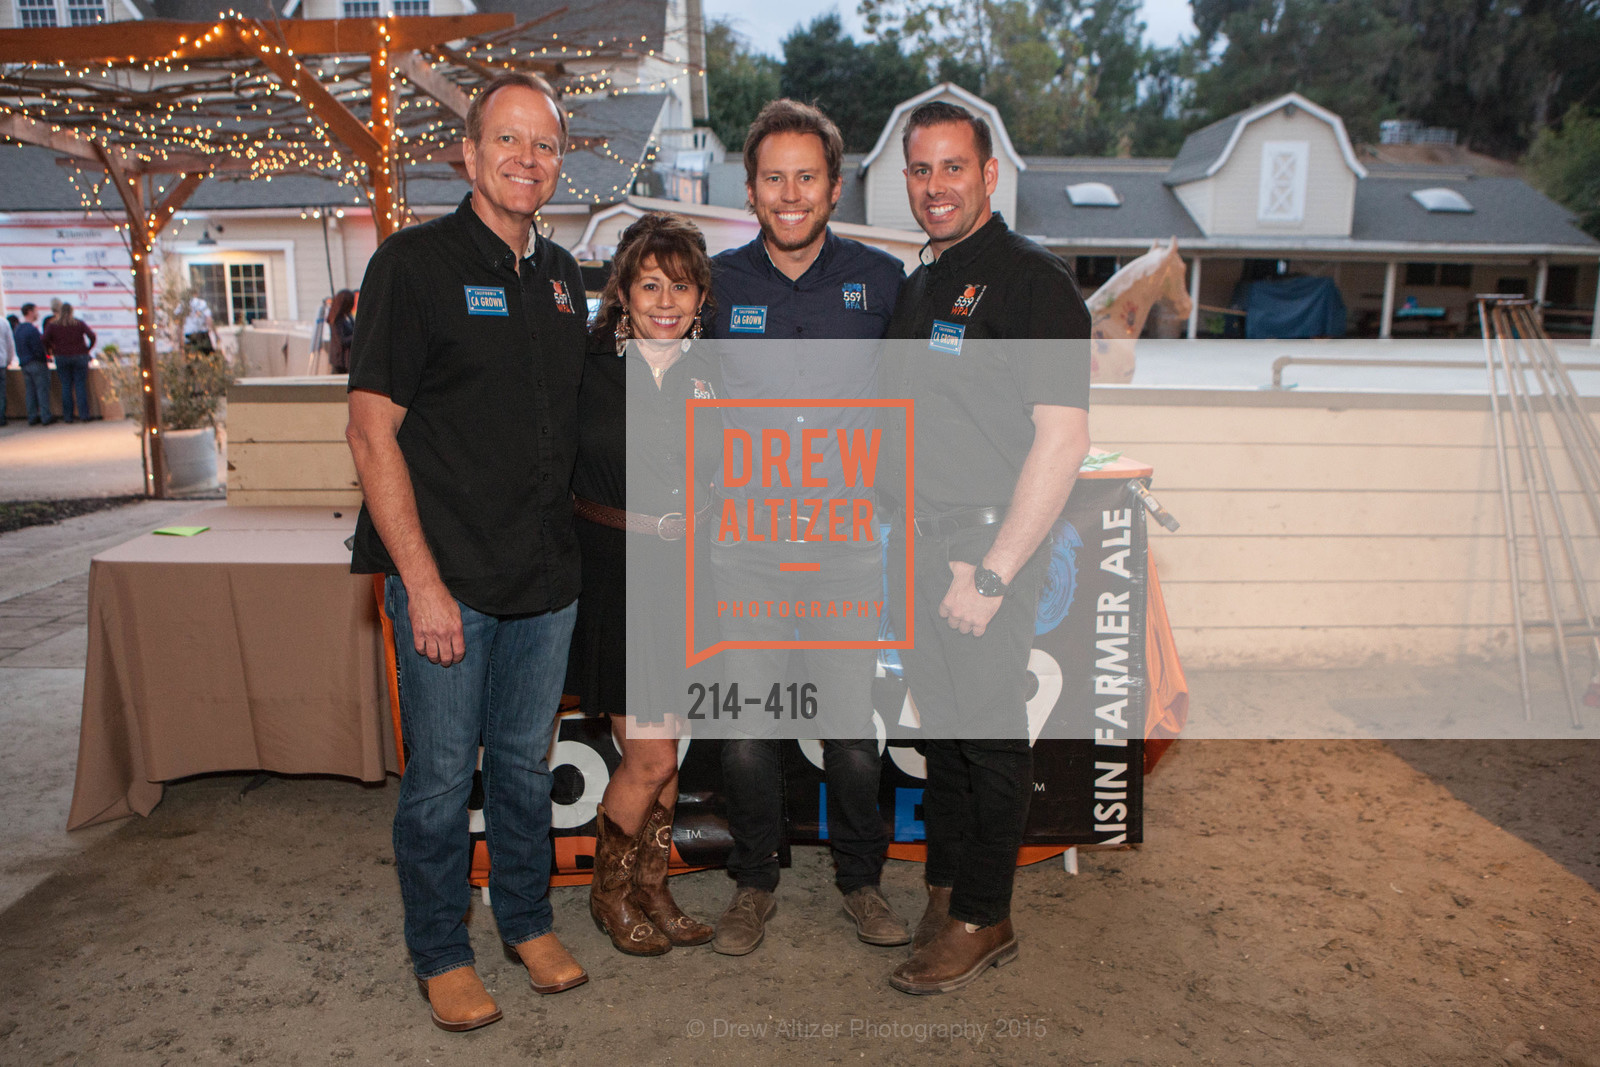 Randy Williams, Cheryl Gomes Williams, Ryan Williams, Rhett WIlliams, Children's Health Council Presents Rocktoberfest, National Center For Equine Facilitated Therapy. 880 Runnymede Rd, October 15th, 2015,Drew Altizer, Drew Altizer Photography, full-service event agency, private events, San Francisco photographer, photographer California